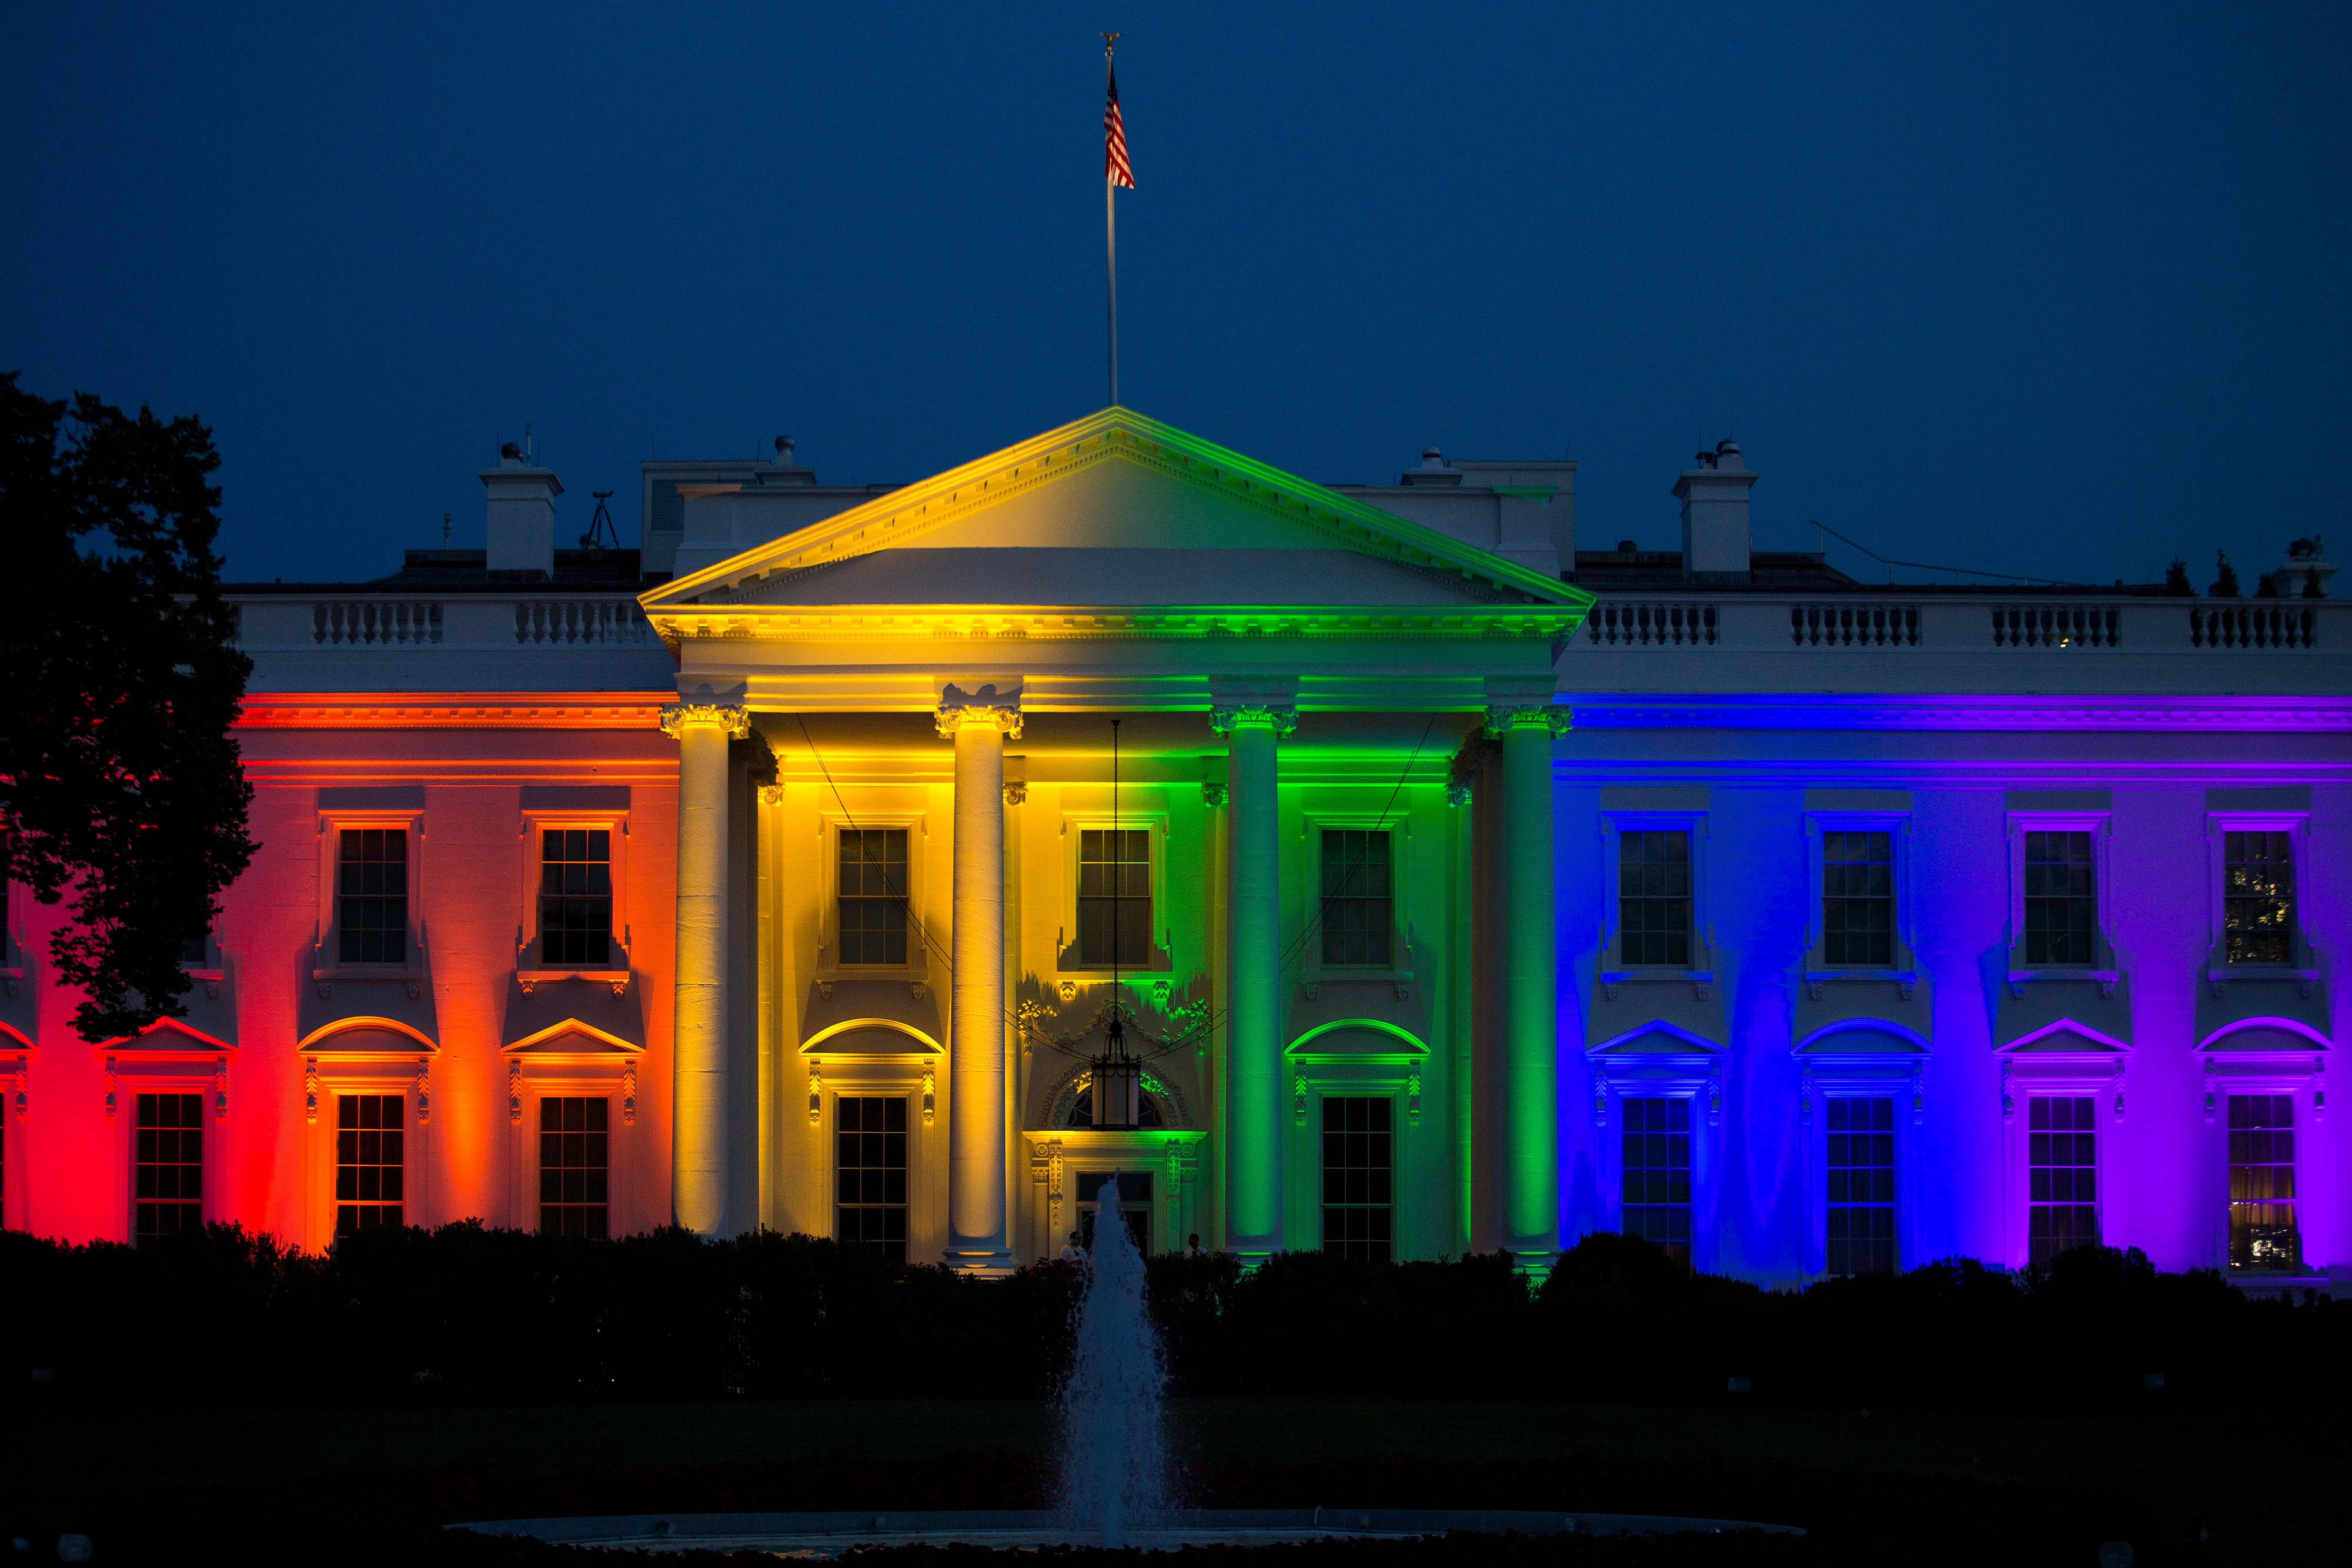 GLAAD's latest report found 55 percent of LGBTQ people said they experienced anti-queer discrimination...